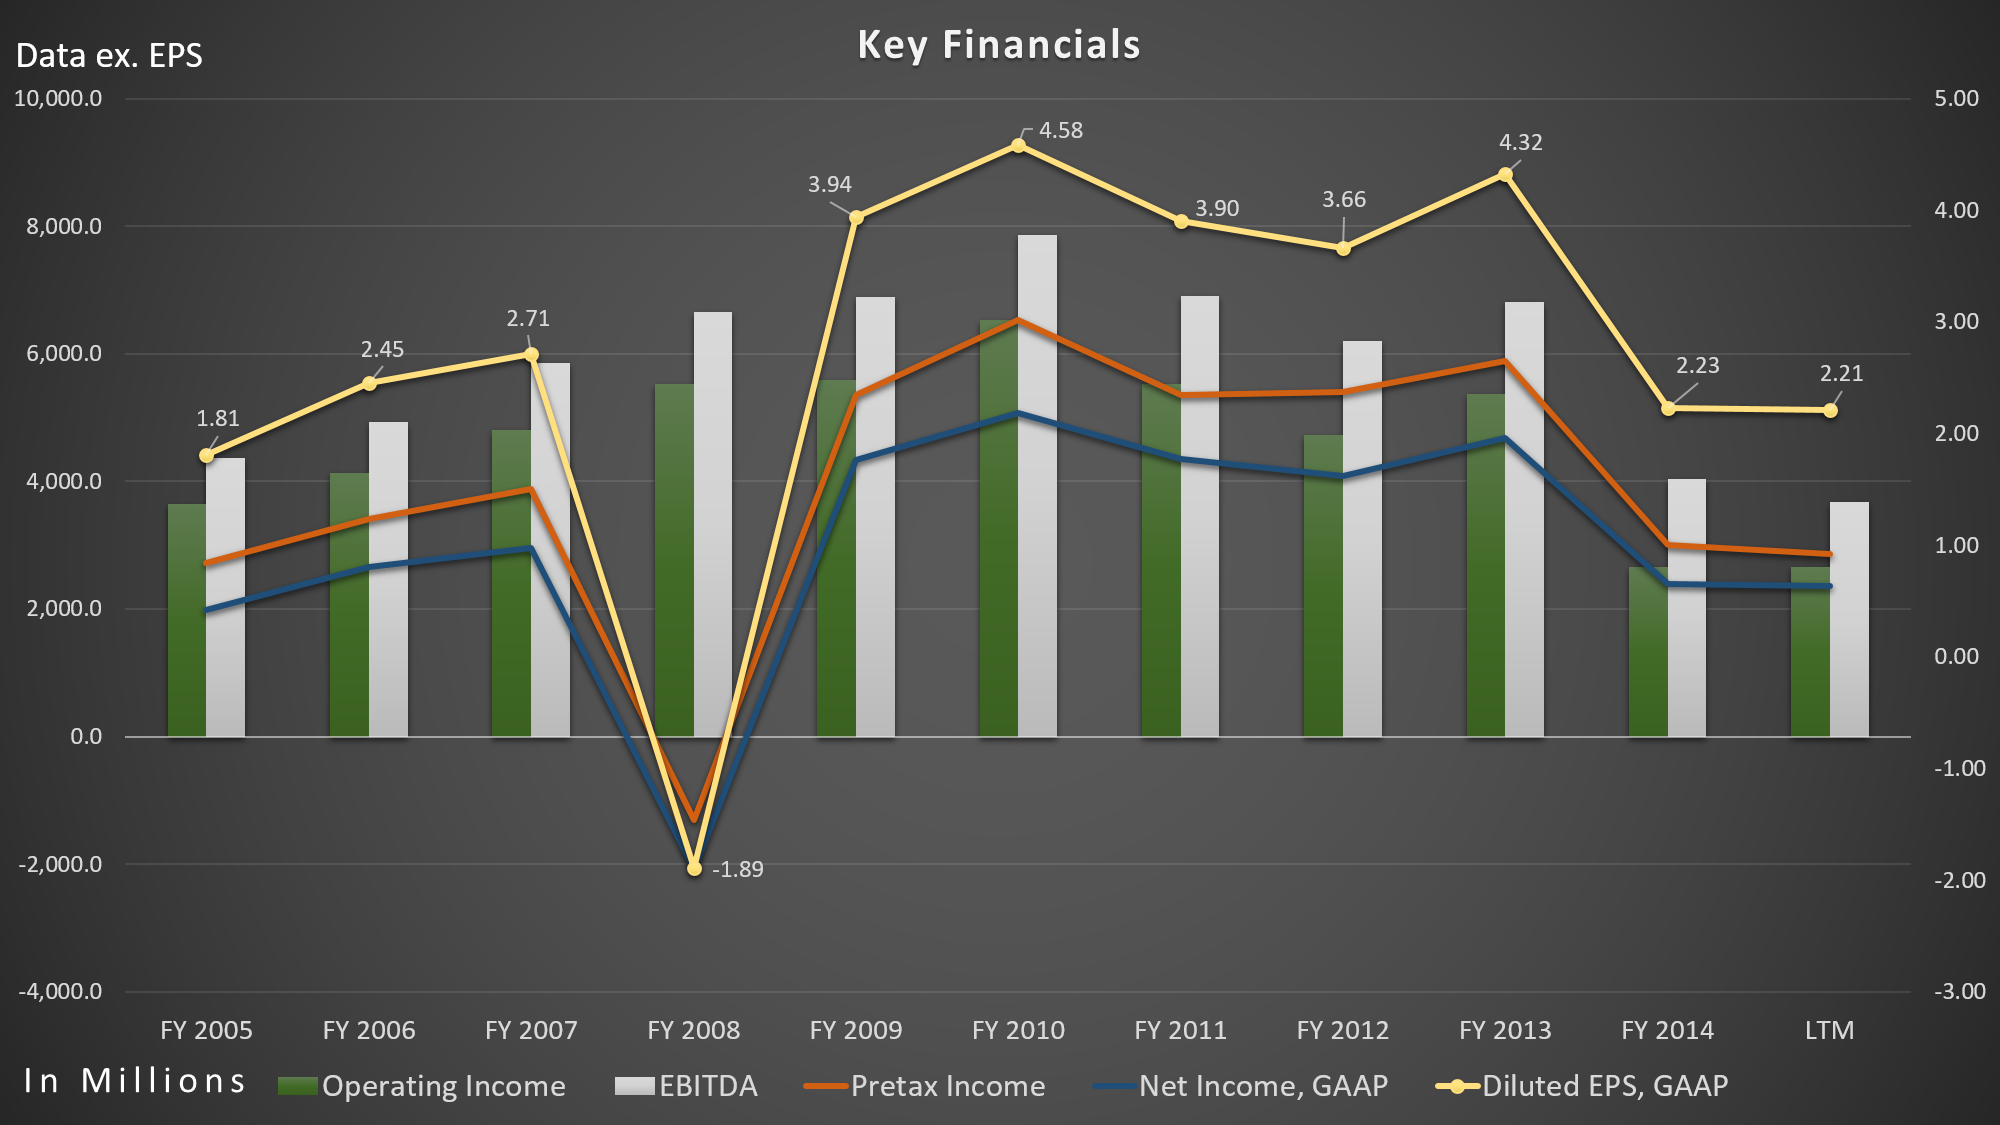 Eli Lilly - Key Financials